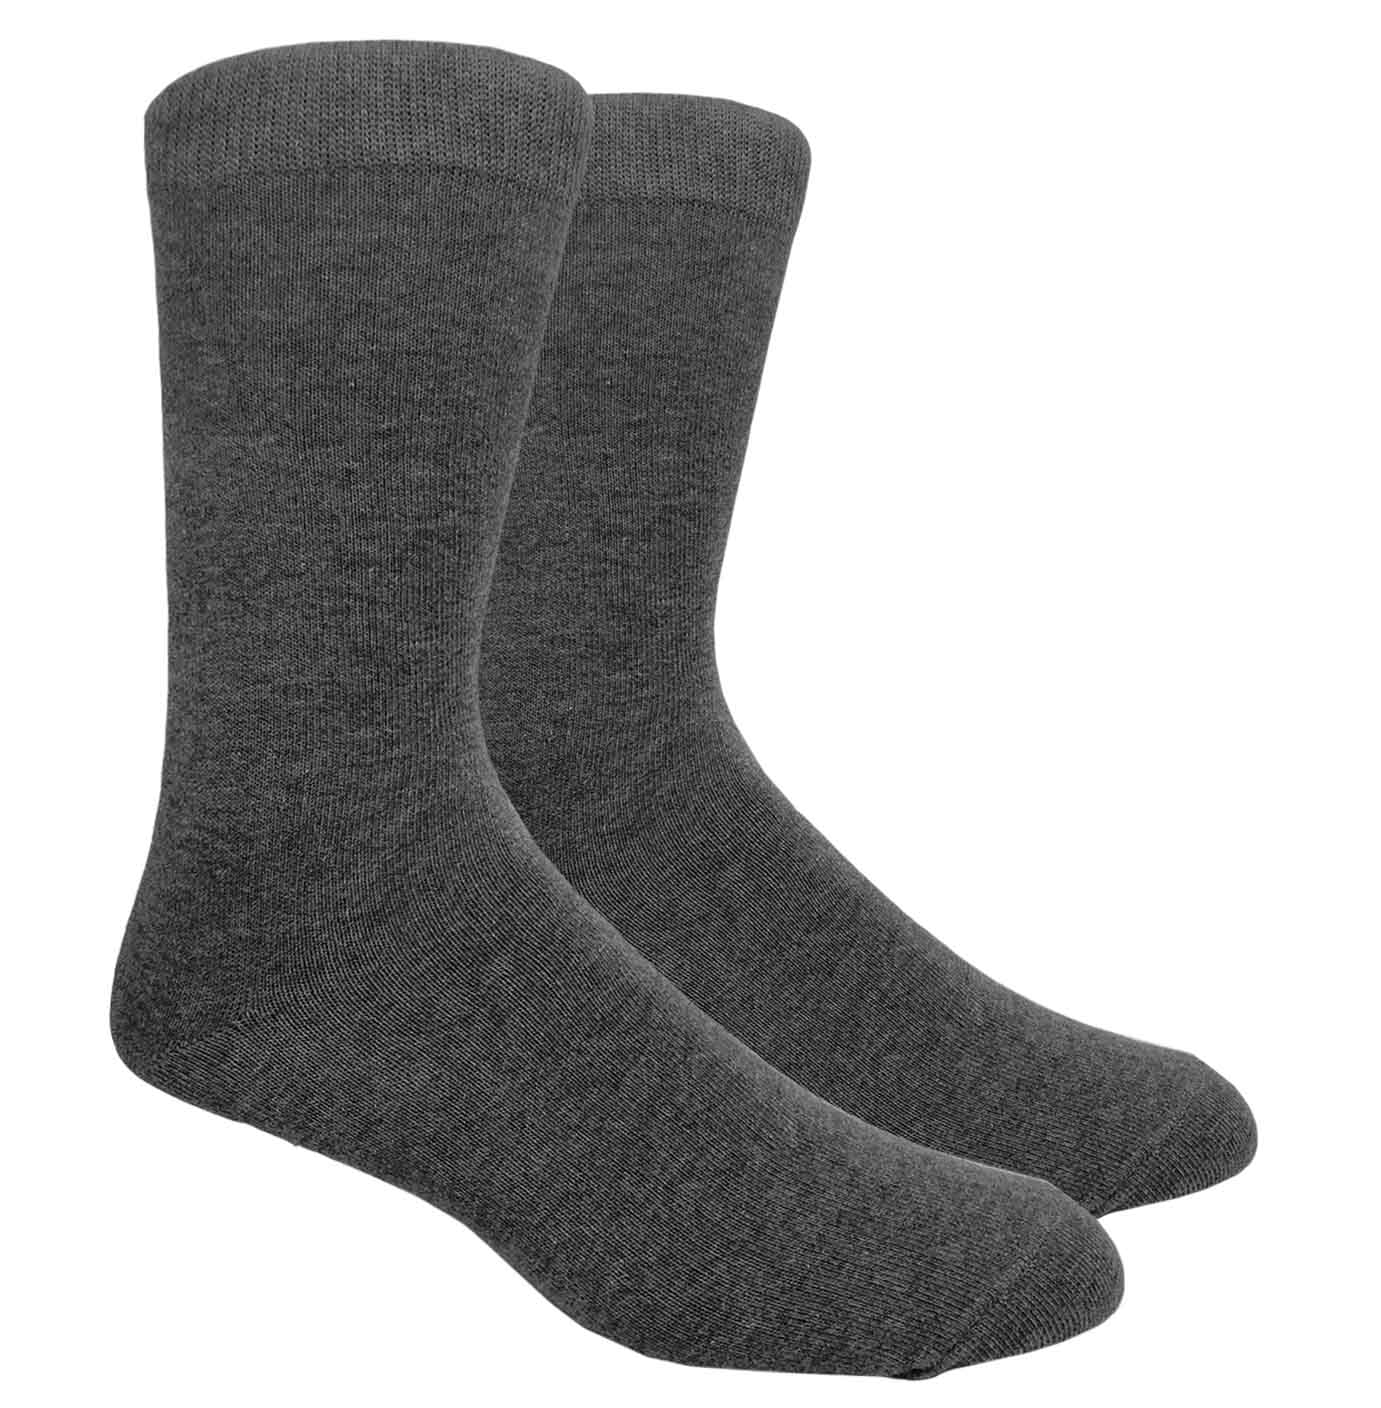 Black Label Plain Dress Socks - Heather Grey